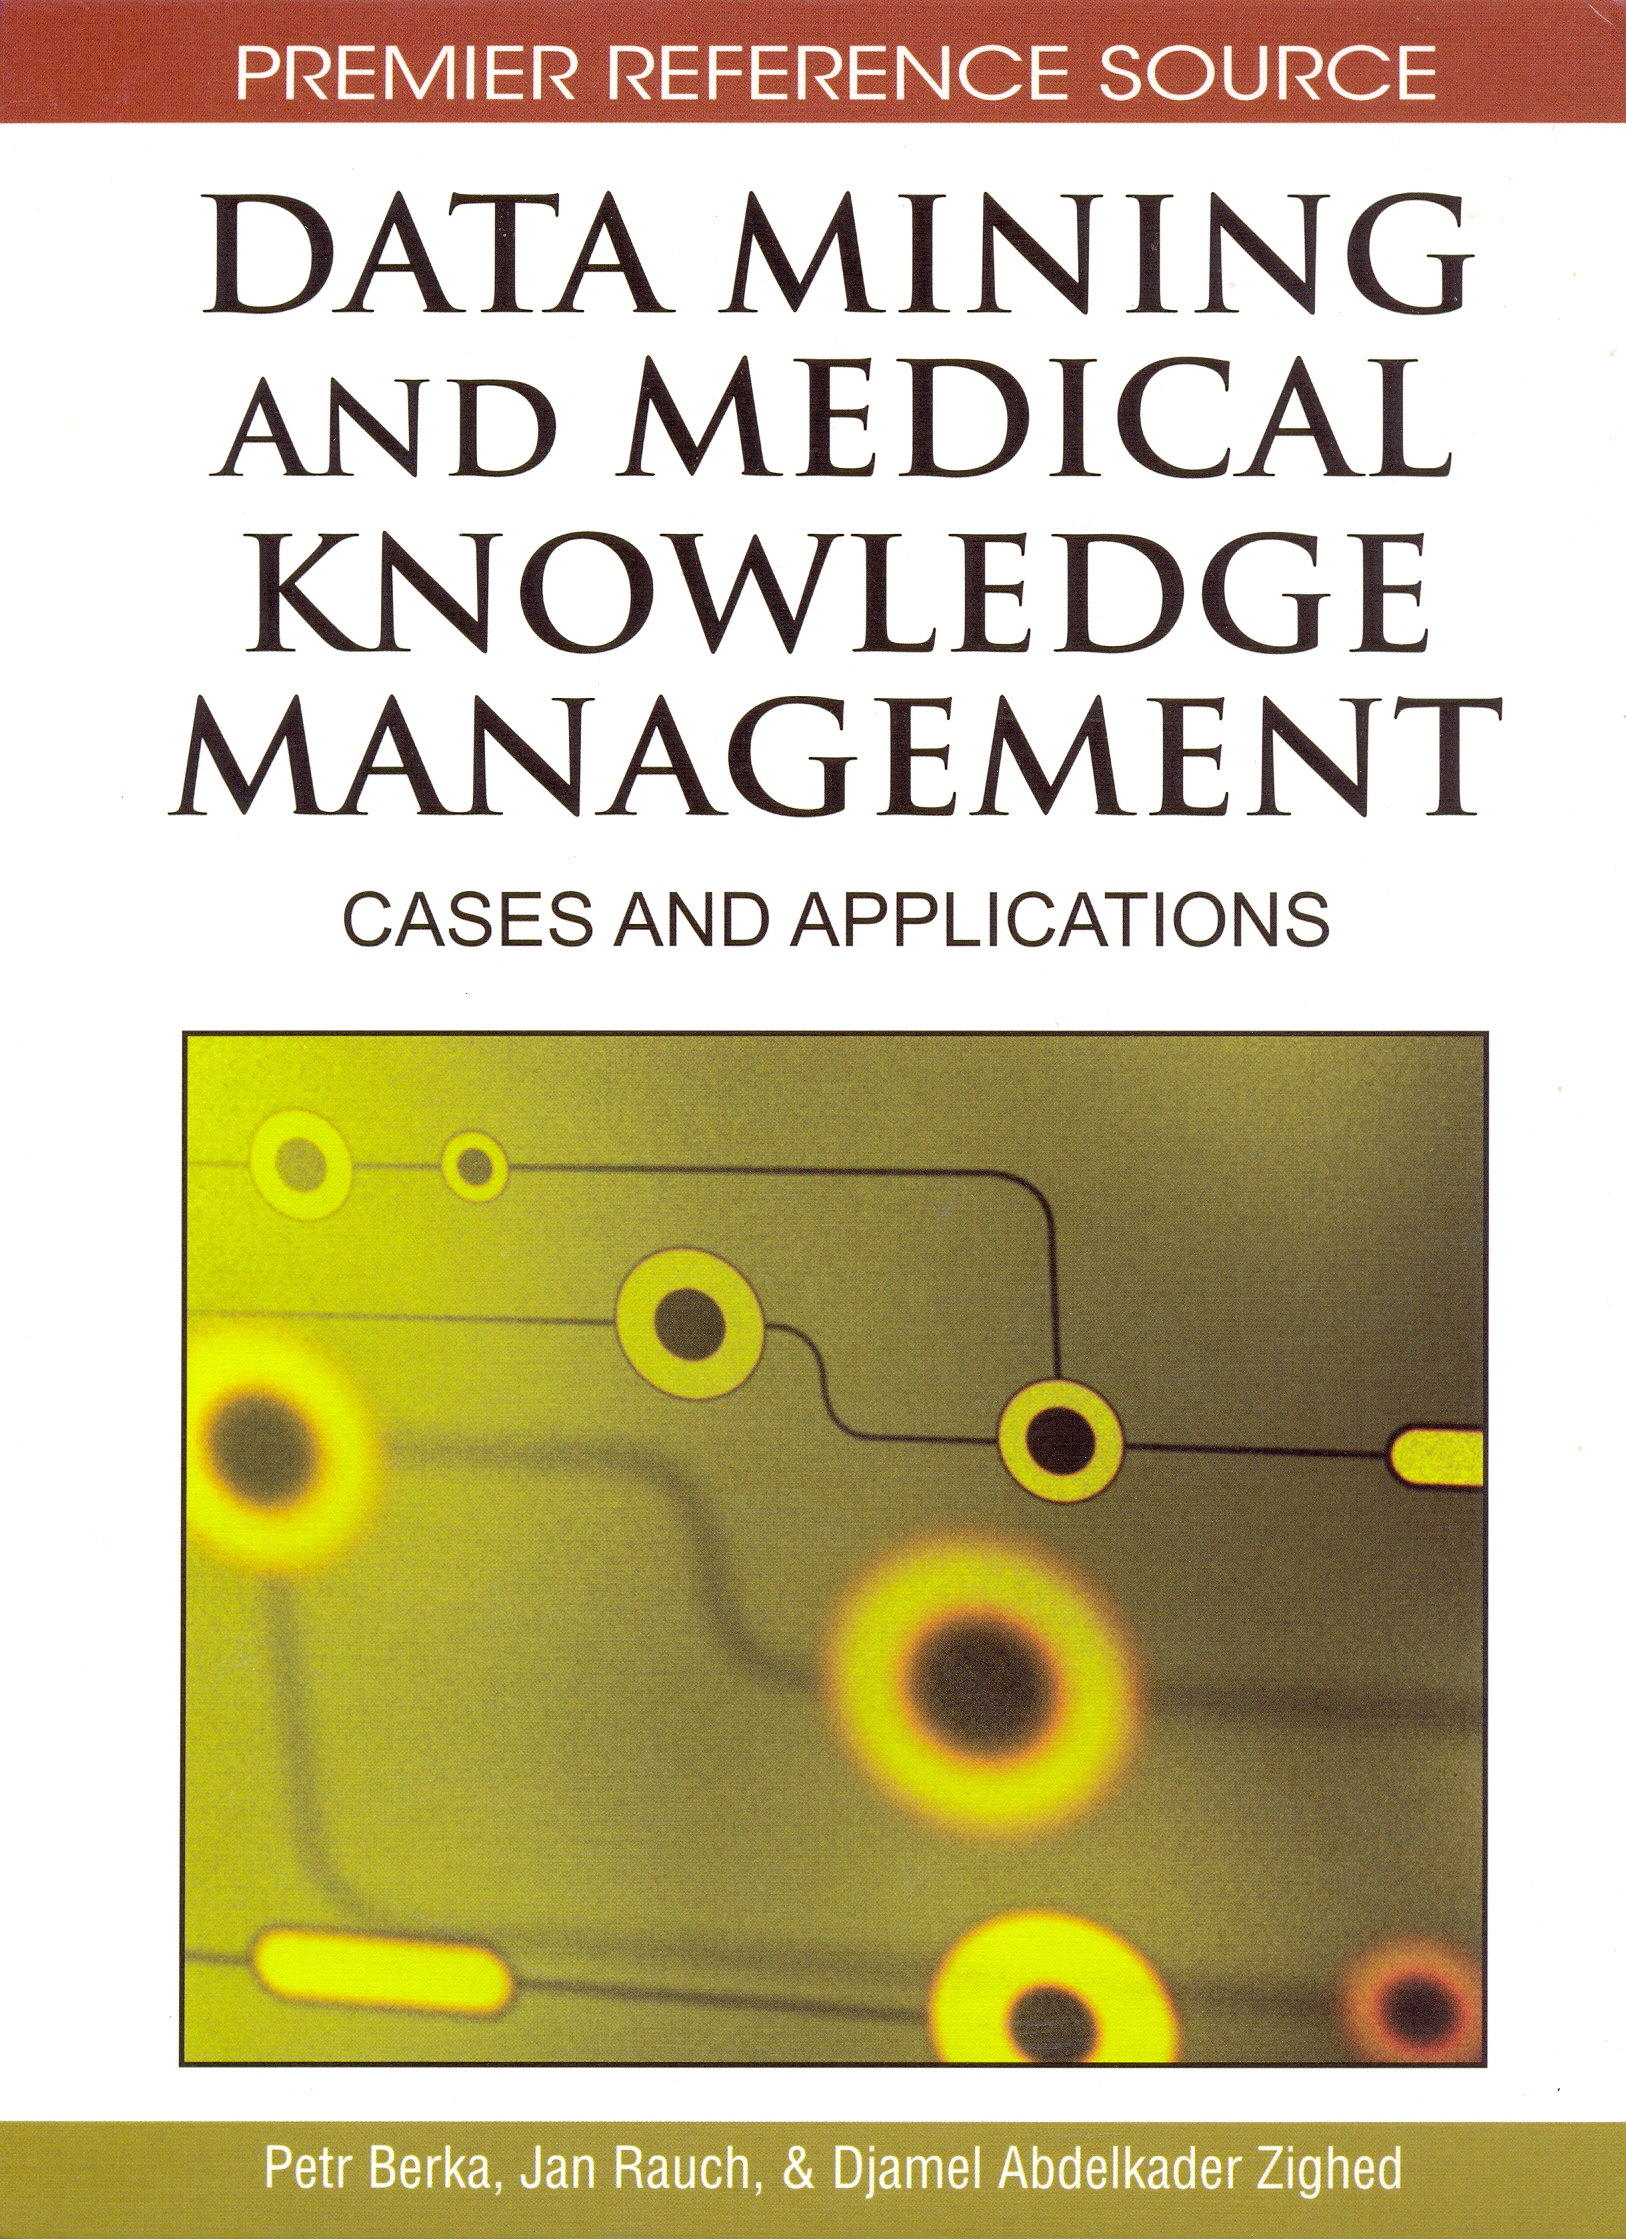 Data Mining and Medical Knowledge Management: Cases and Applications